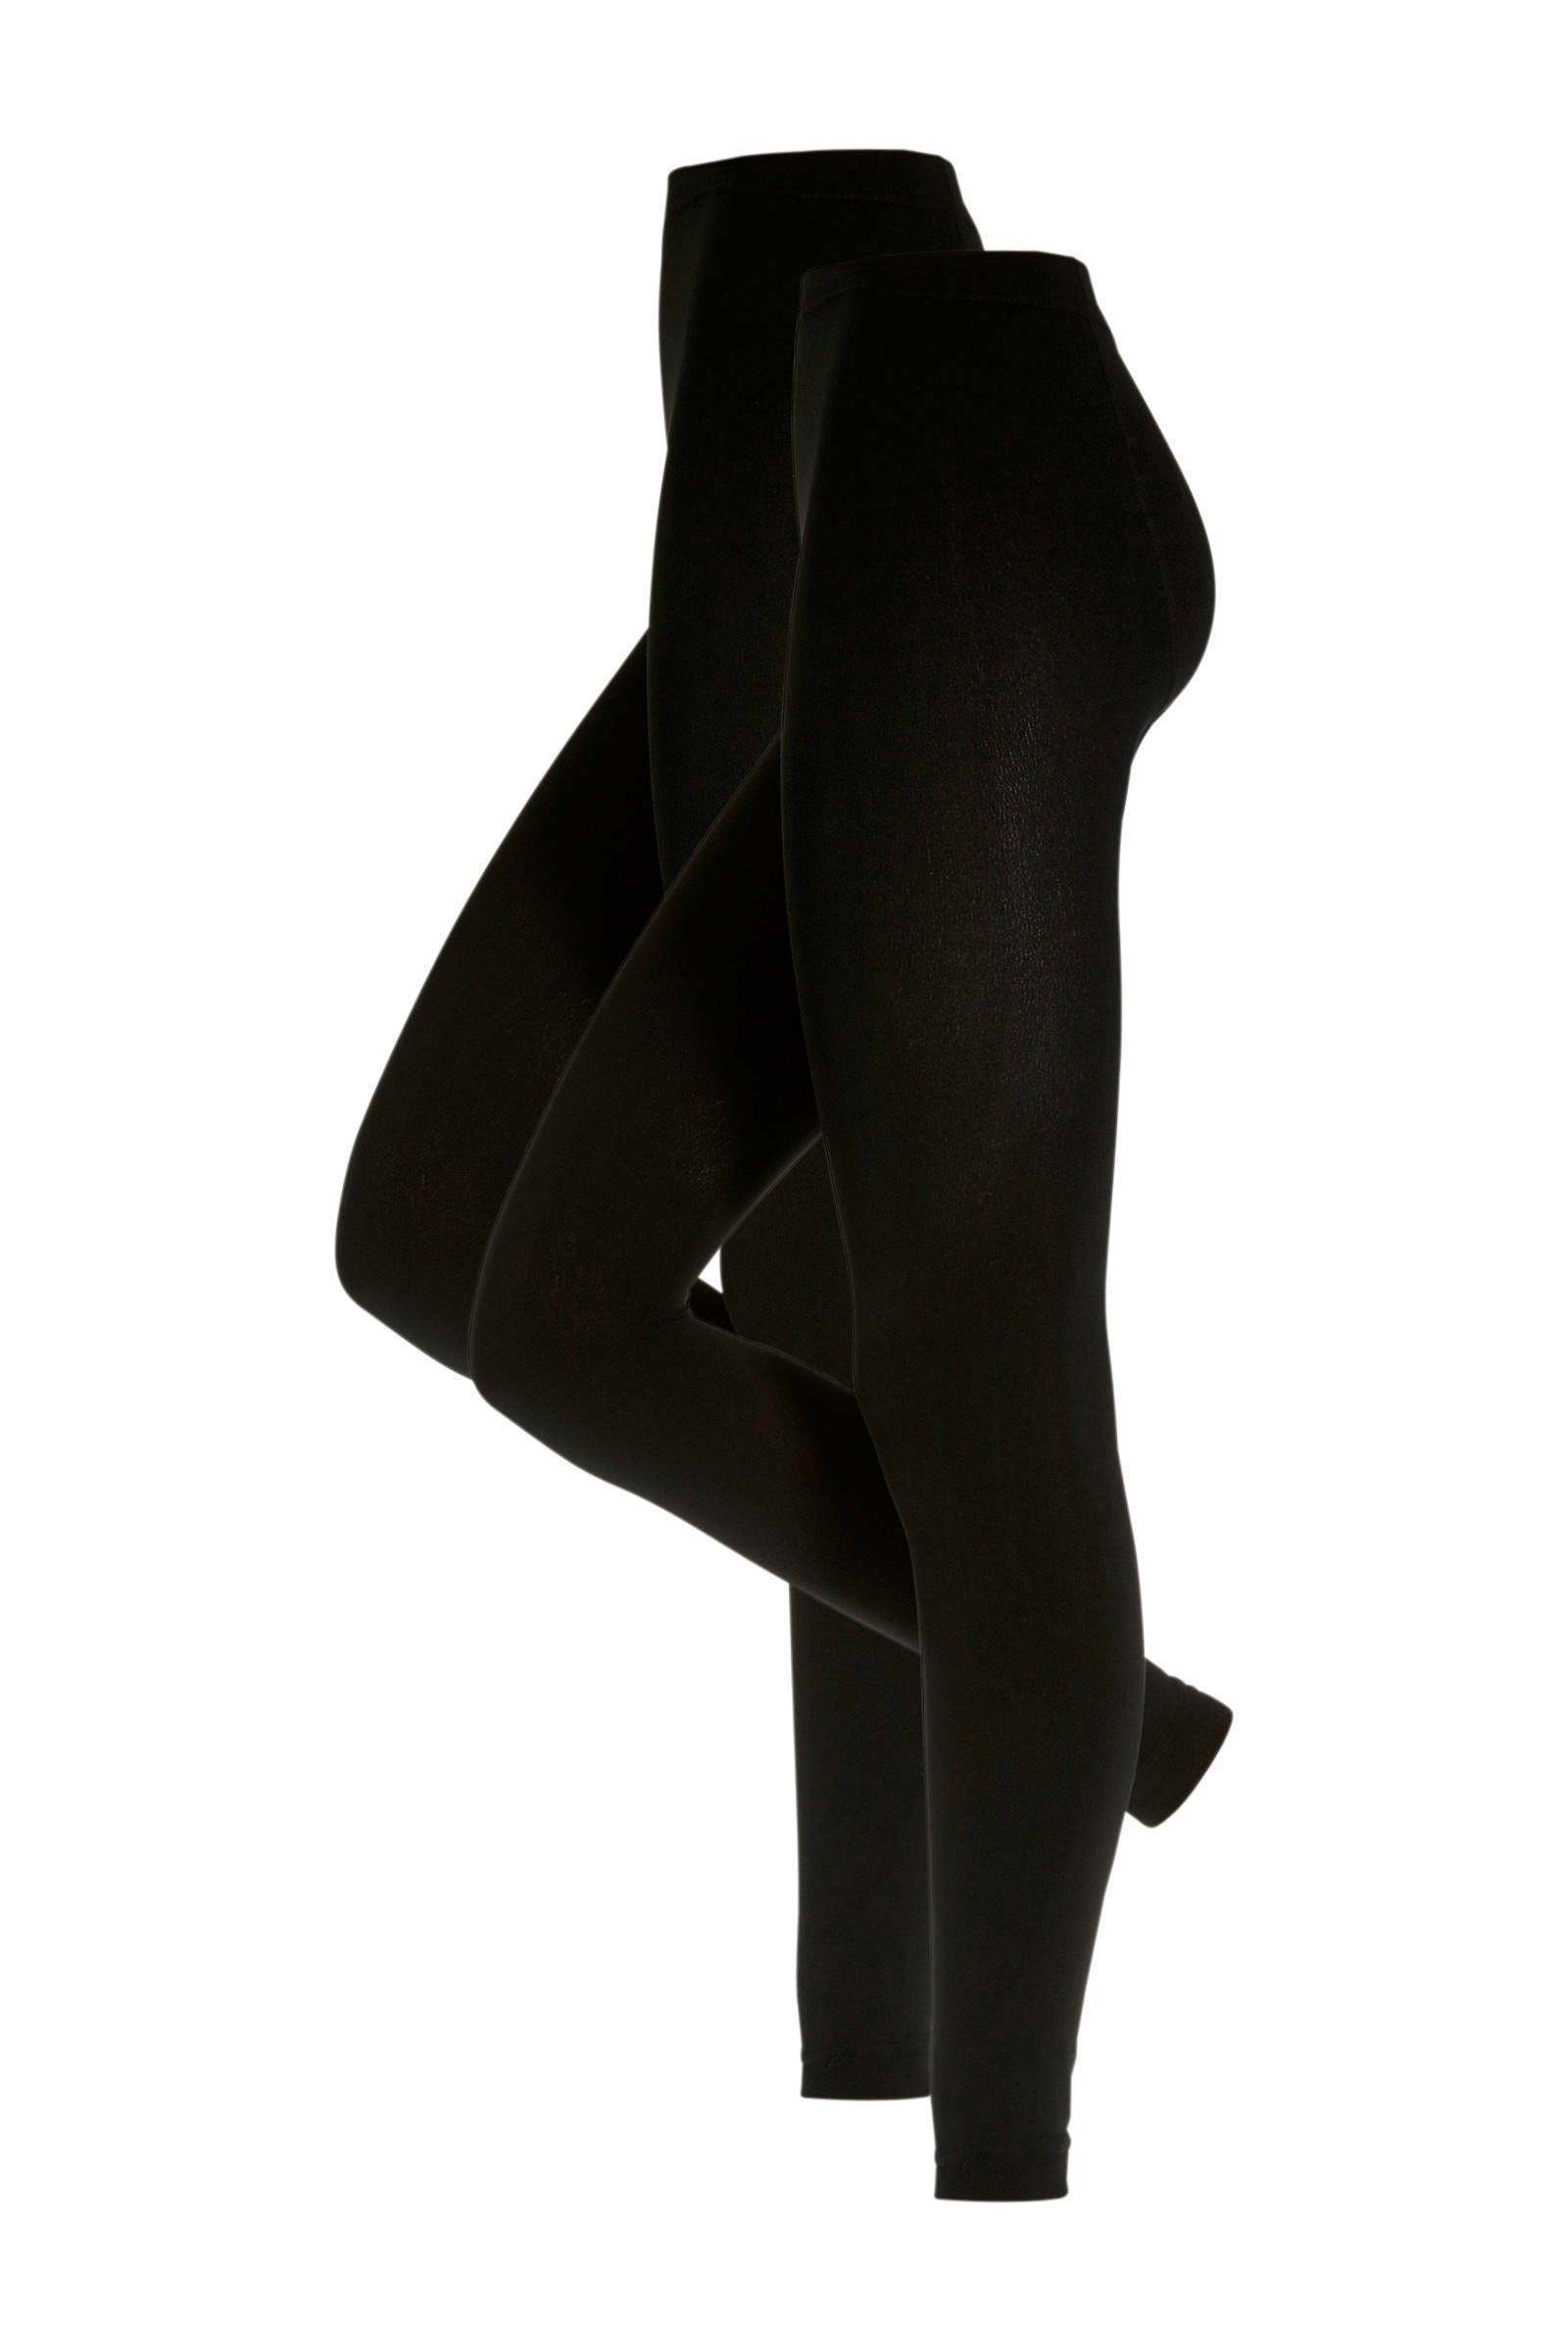 whkmp's own thermo legging - 2 paar (dames)